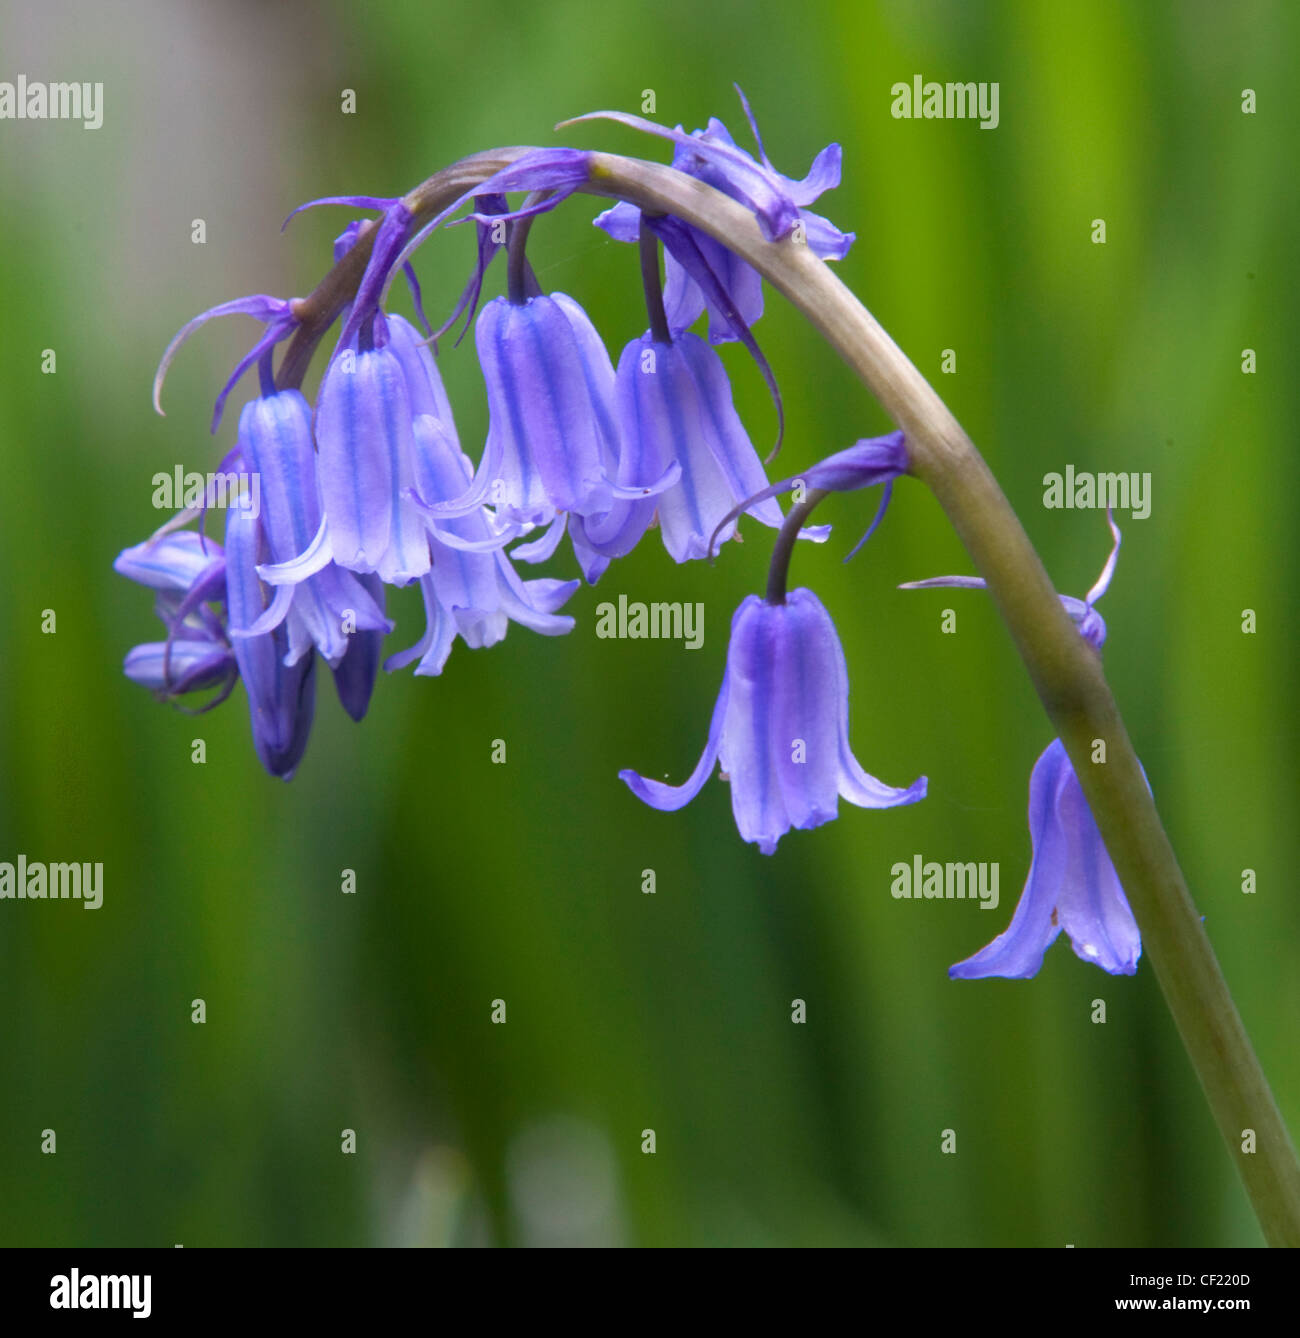 Common Bluebell,(,Hyacinthoides,),a,blue,flower,seen,in,spring,here in Lymm,Cheshire,UK,gotonysmith,beauty,nature,what,to,see,whattosee,tourist,tour,traveler,gotonysmith,Buy Pictures of,Buy Images Of,The common Bluebell,(Hyacinthoides,non-scripta,to,be,precise),grows,from,bulbs,and,can,be,expected,about,four,weeks,after,daffadils,in,Britain.,By,the,time,they,appear,frosts,should,be,receeding,and,days,getting,noticably,warmer.,Other,common,names,for,it,include,auld,mans,bell,bluebell,calverkeys,culverkeys,English bluebell,jacinth,ring-o,absence,if,suitable,conditions,recur.,The,seedlings,can,flower,in,two,years,from,seed,and,as,a,result,bluebells,can,quickly,spread,to,form,a,carpet,in,suitable,conditions.,In,spring,many,north-western,European,woods,are,covered,by,dense,carpets,of,this,flower,thes,-bells,,wilde,hyacint,,and,wood,bells,(probably,as,they,appear,in,shaded,woodland,almost,spontainiously.,Bees,are,a,favourite,to,pollinate,these,plants.,Their,black,seeds,may,survive,long,periods,of,time,emerging,after,several,years